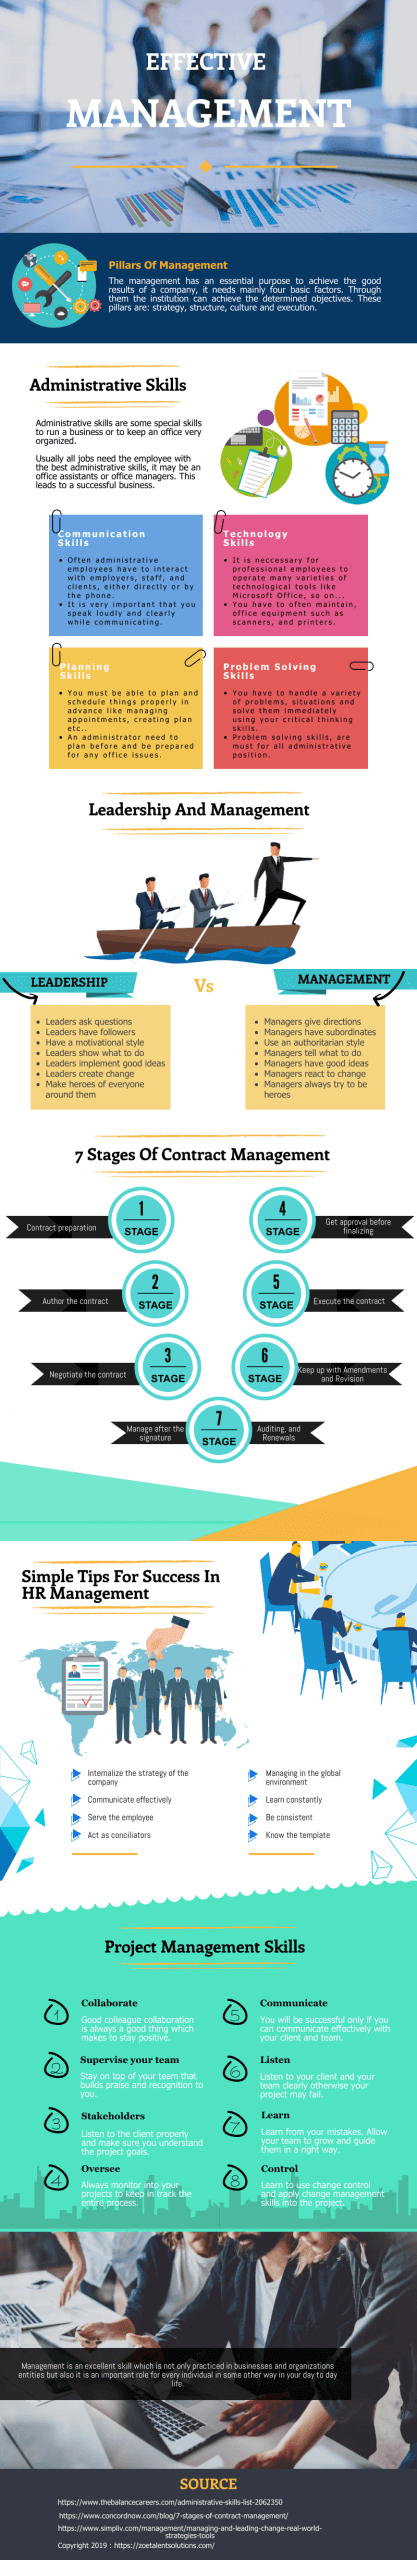 Infographic effective management